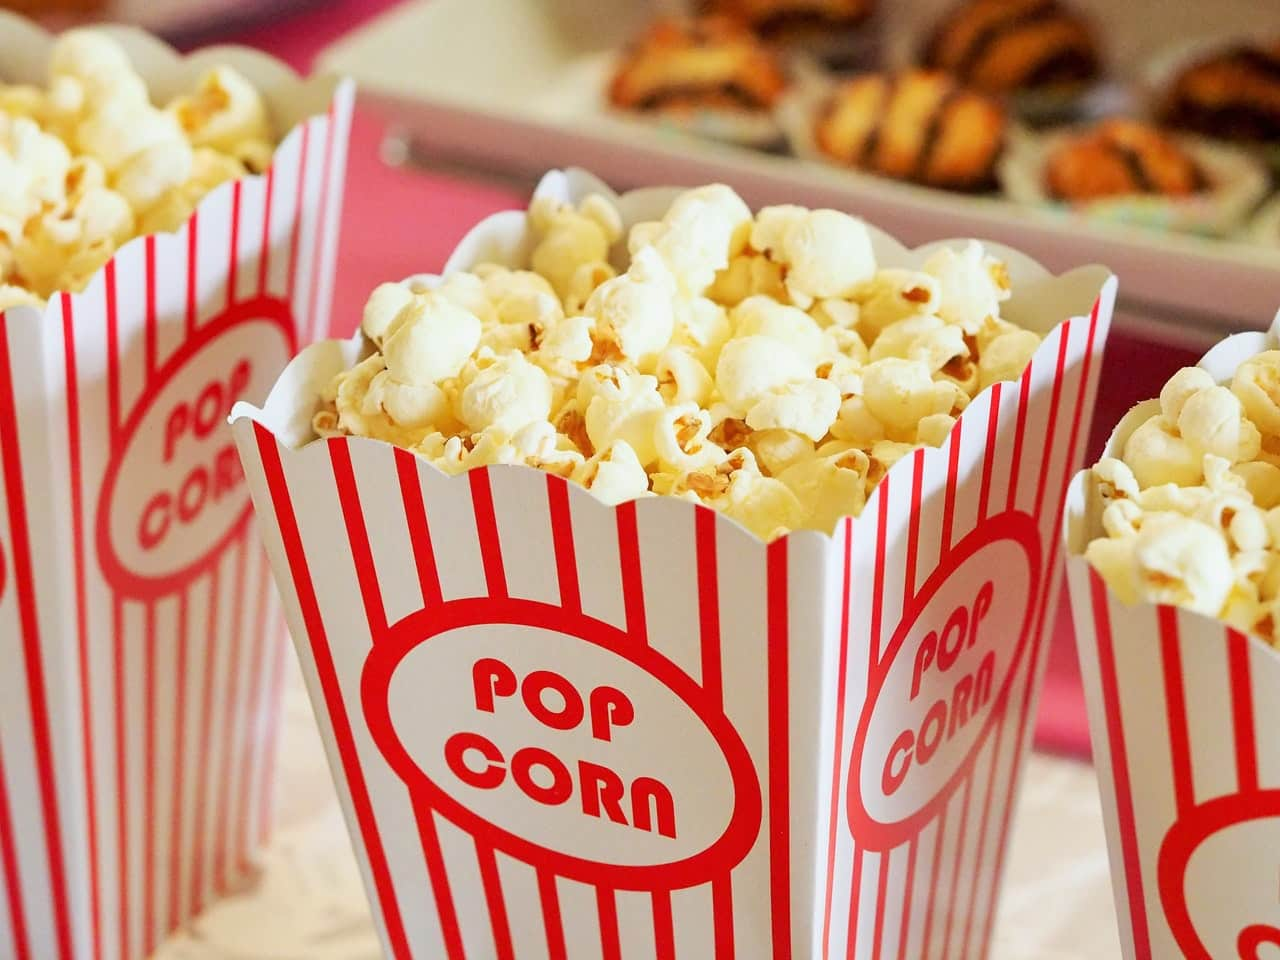 Joking about popcorn in the movies is a money move.